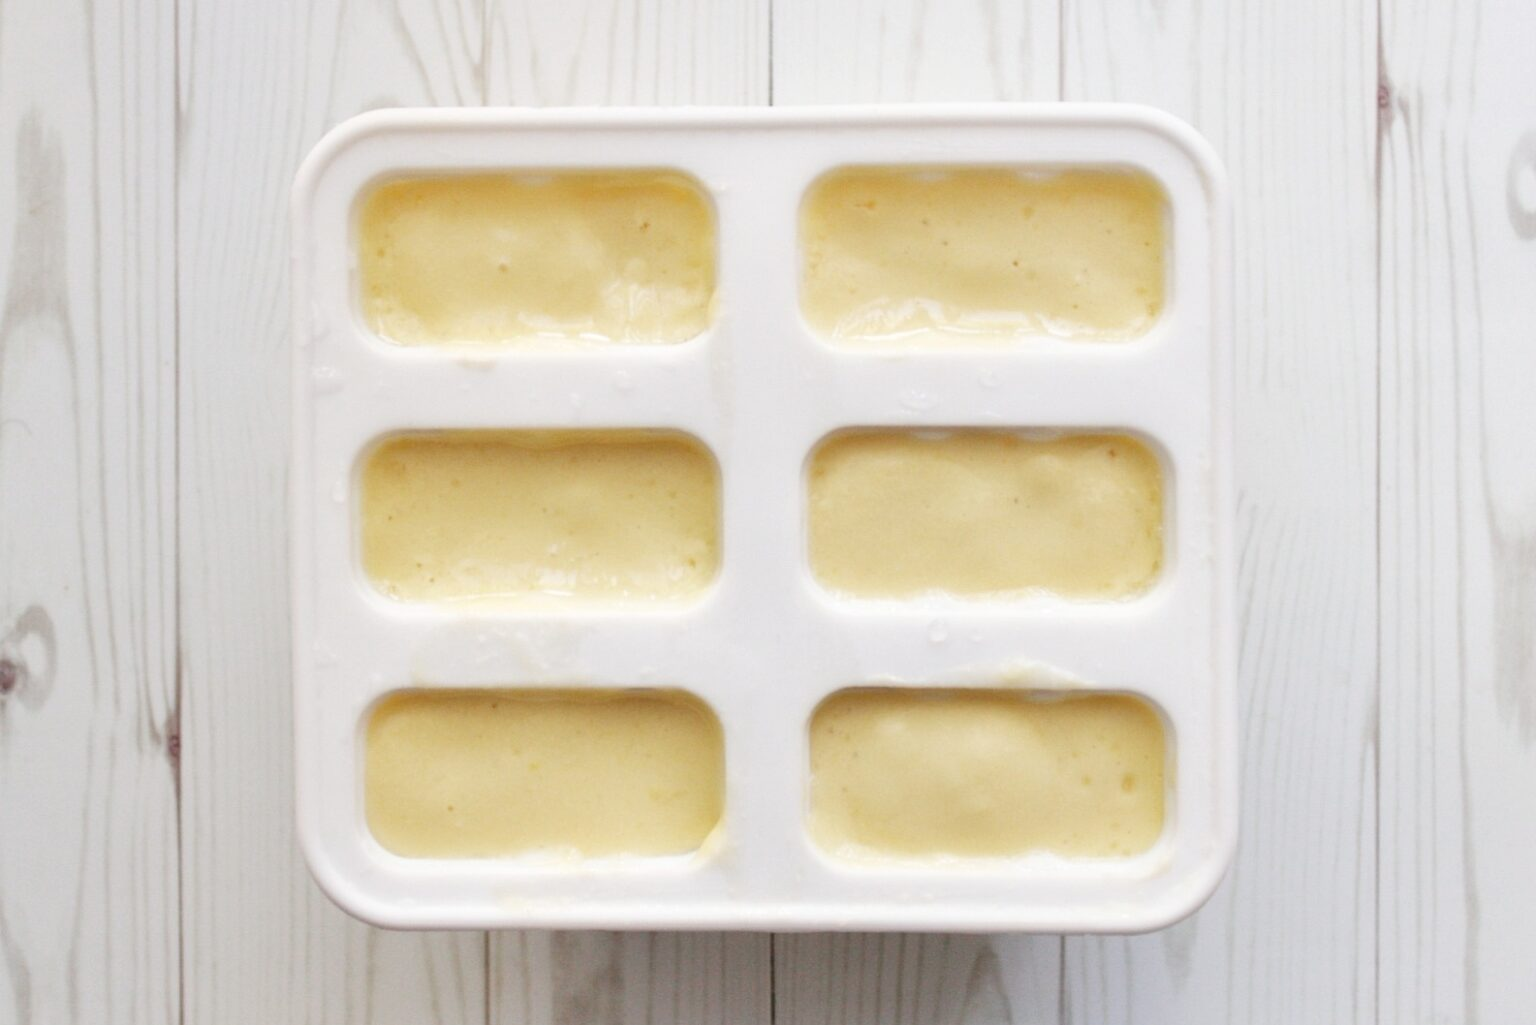 Blended mango, coconut milk, and water in silicone popsicle molds